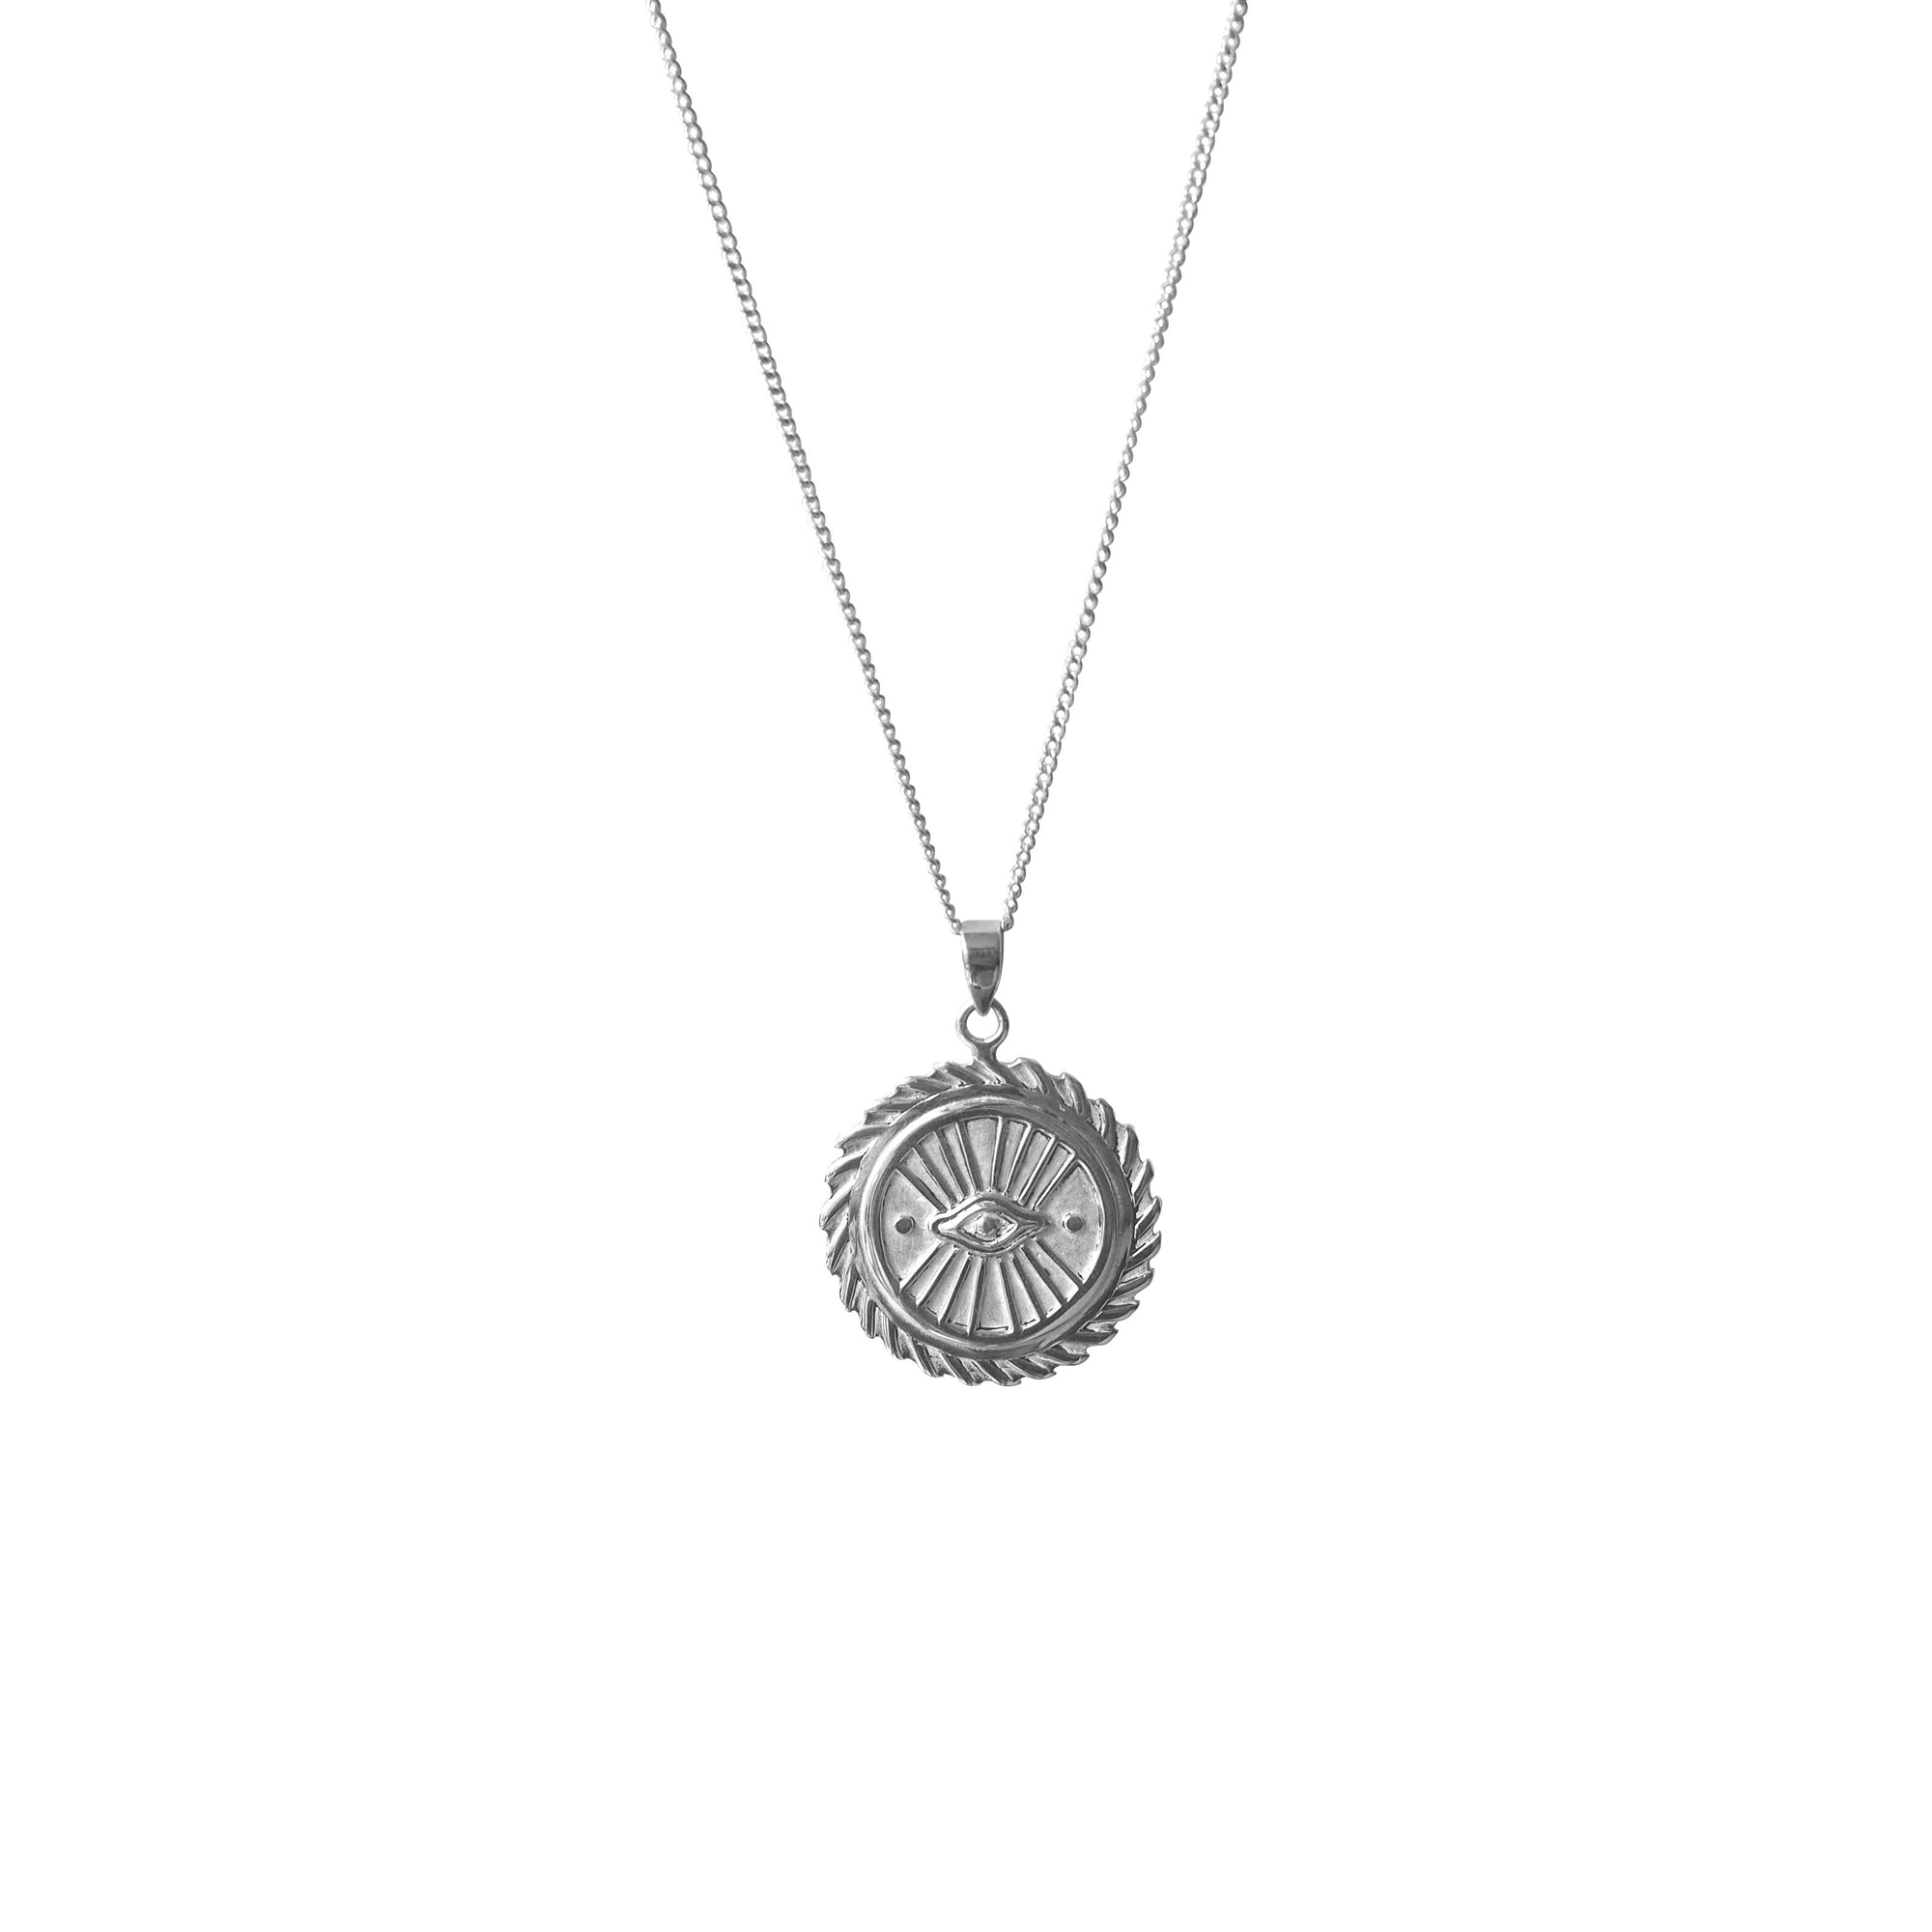 Suzanne 'Protection' Necklace Pendant - Silver